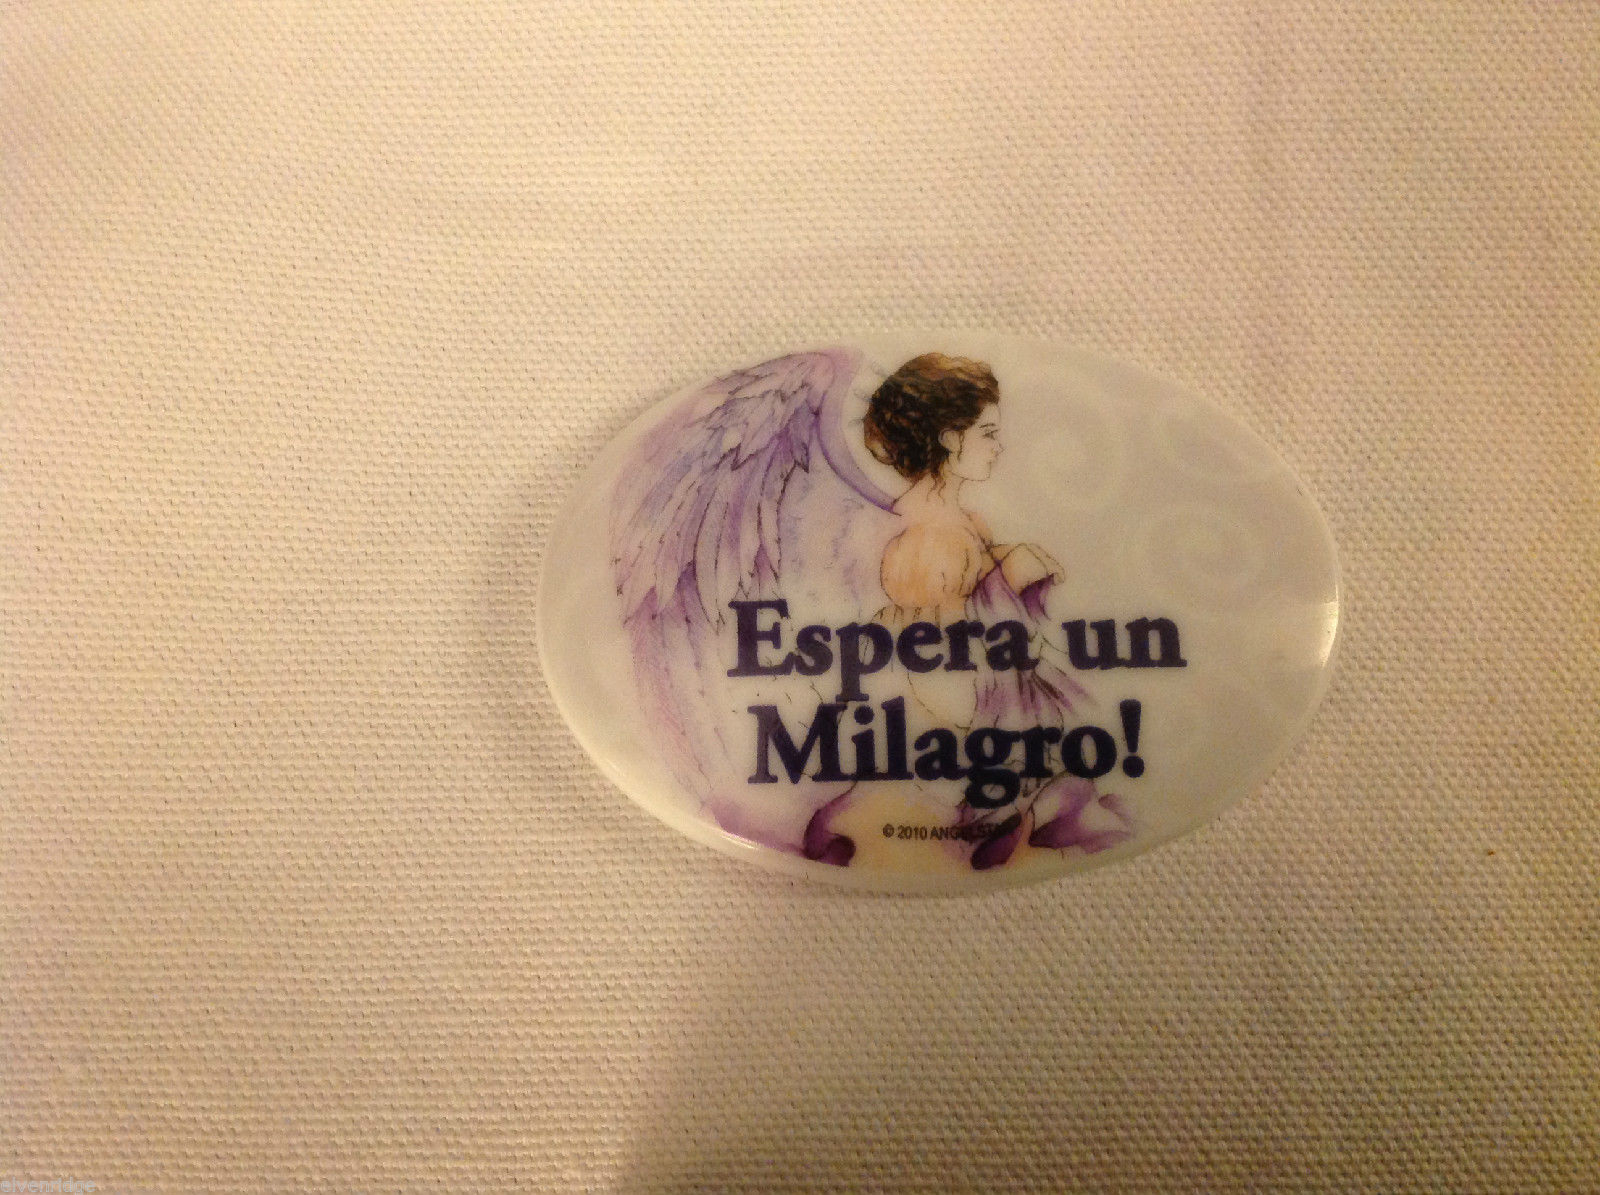 Sturdy ceramic porcelain magnet in Spanish Espera un Milagro Expect a Miracle